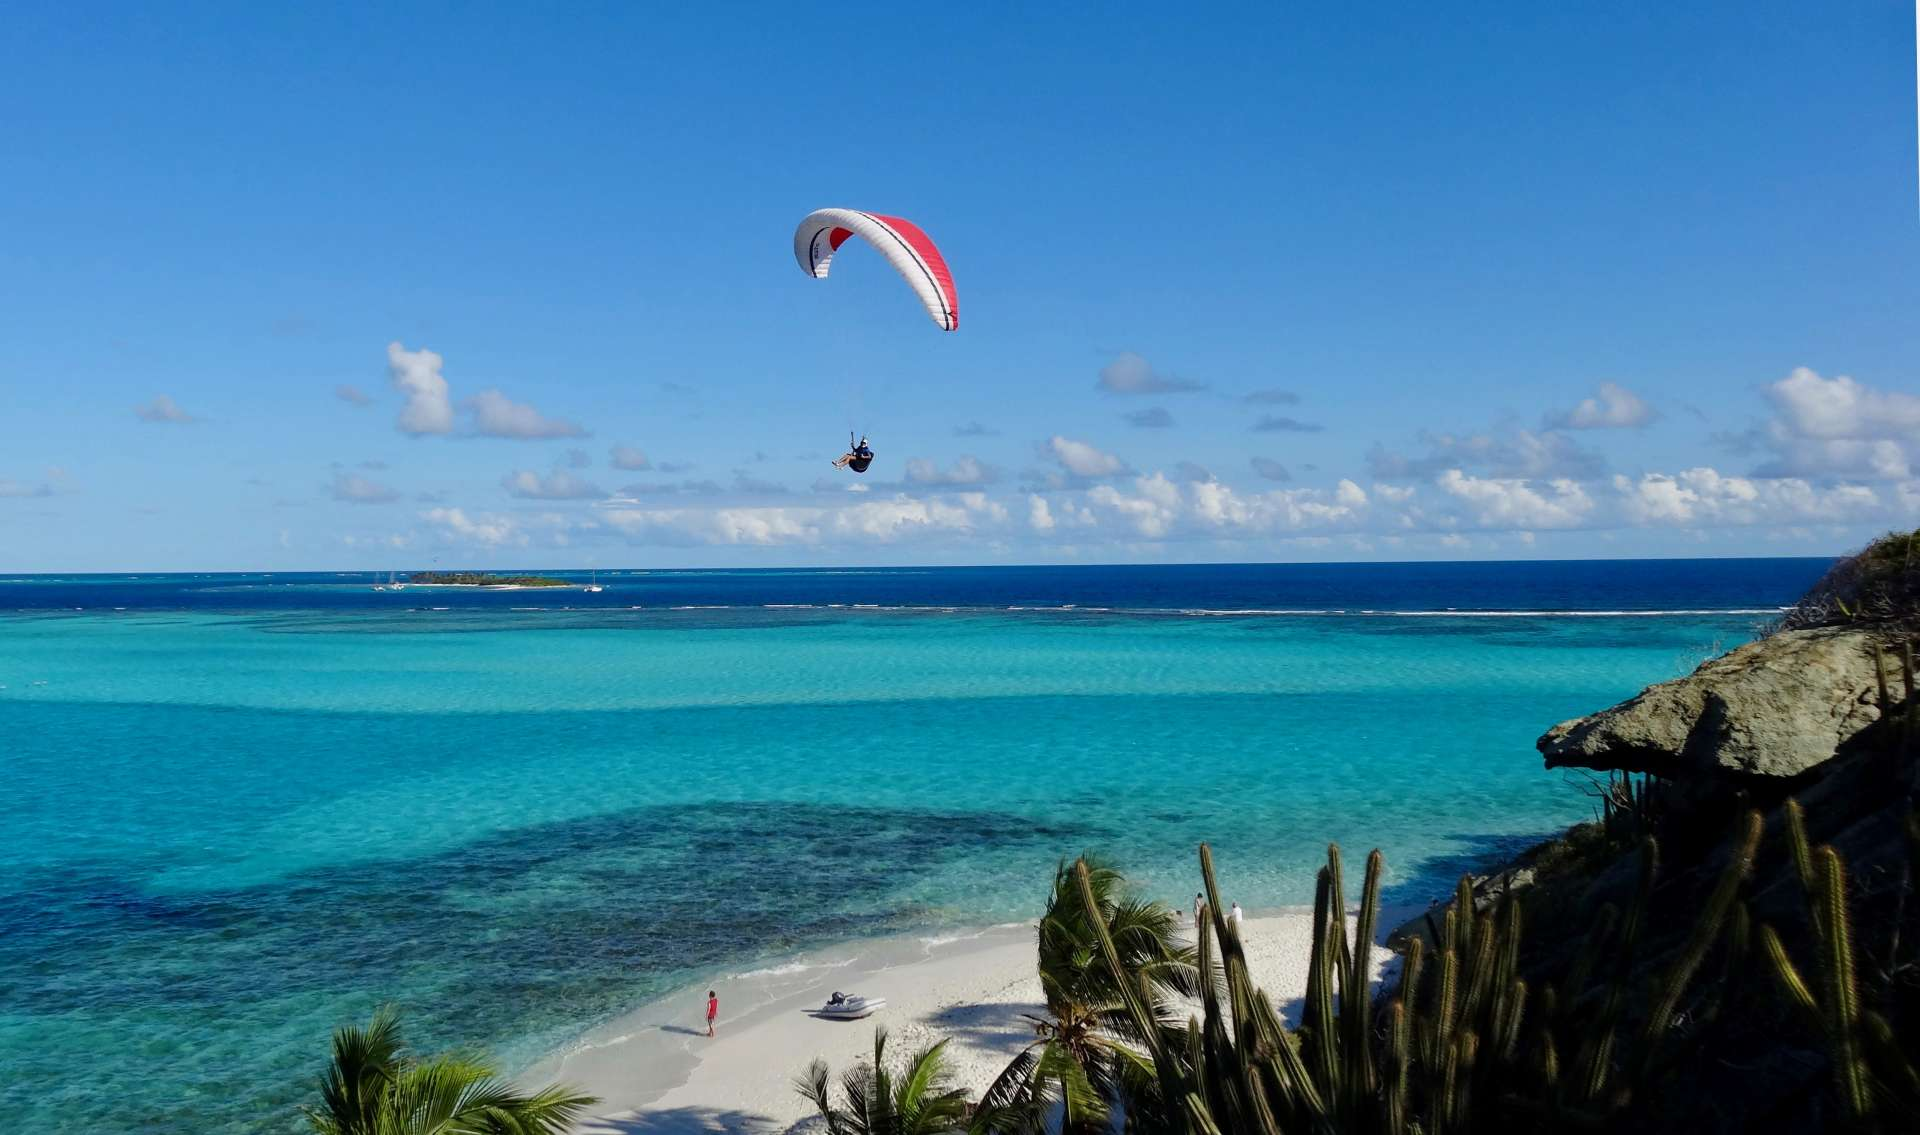 Paragliding in the Grenadines